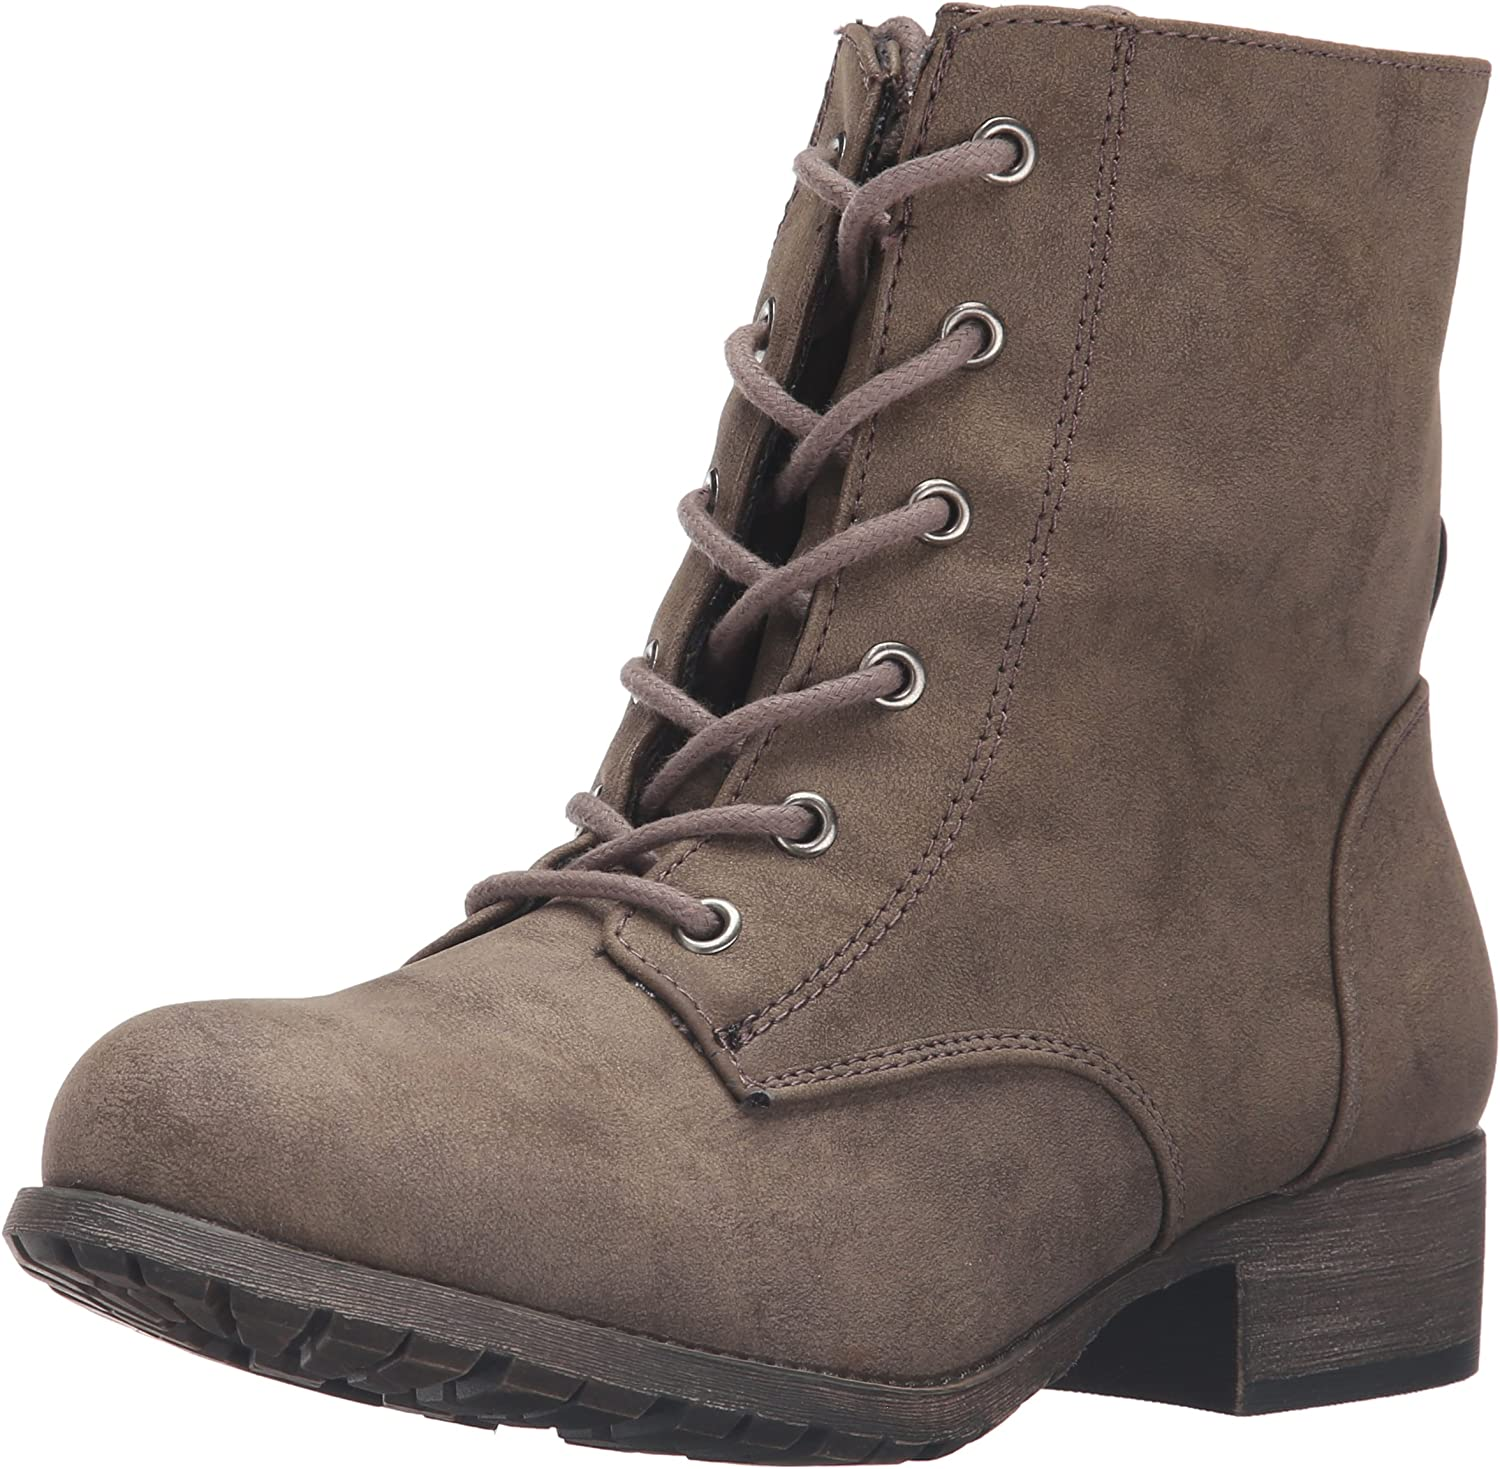 Jellypop Womens Freddy Engineer Boot